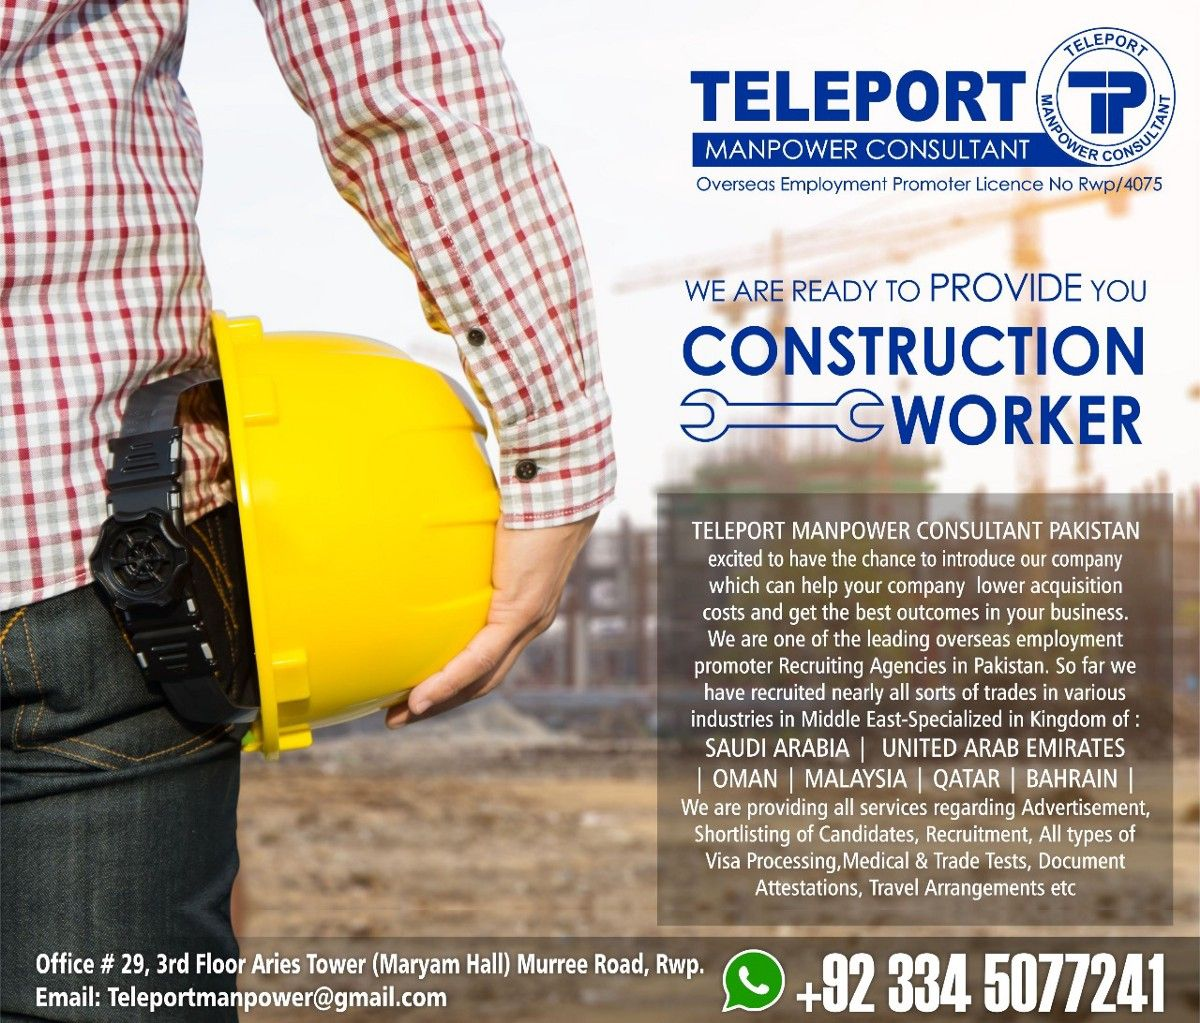 Teleport manpower consultant in Pakistan (With images